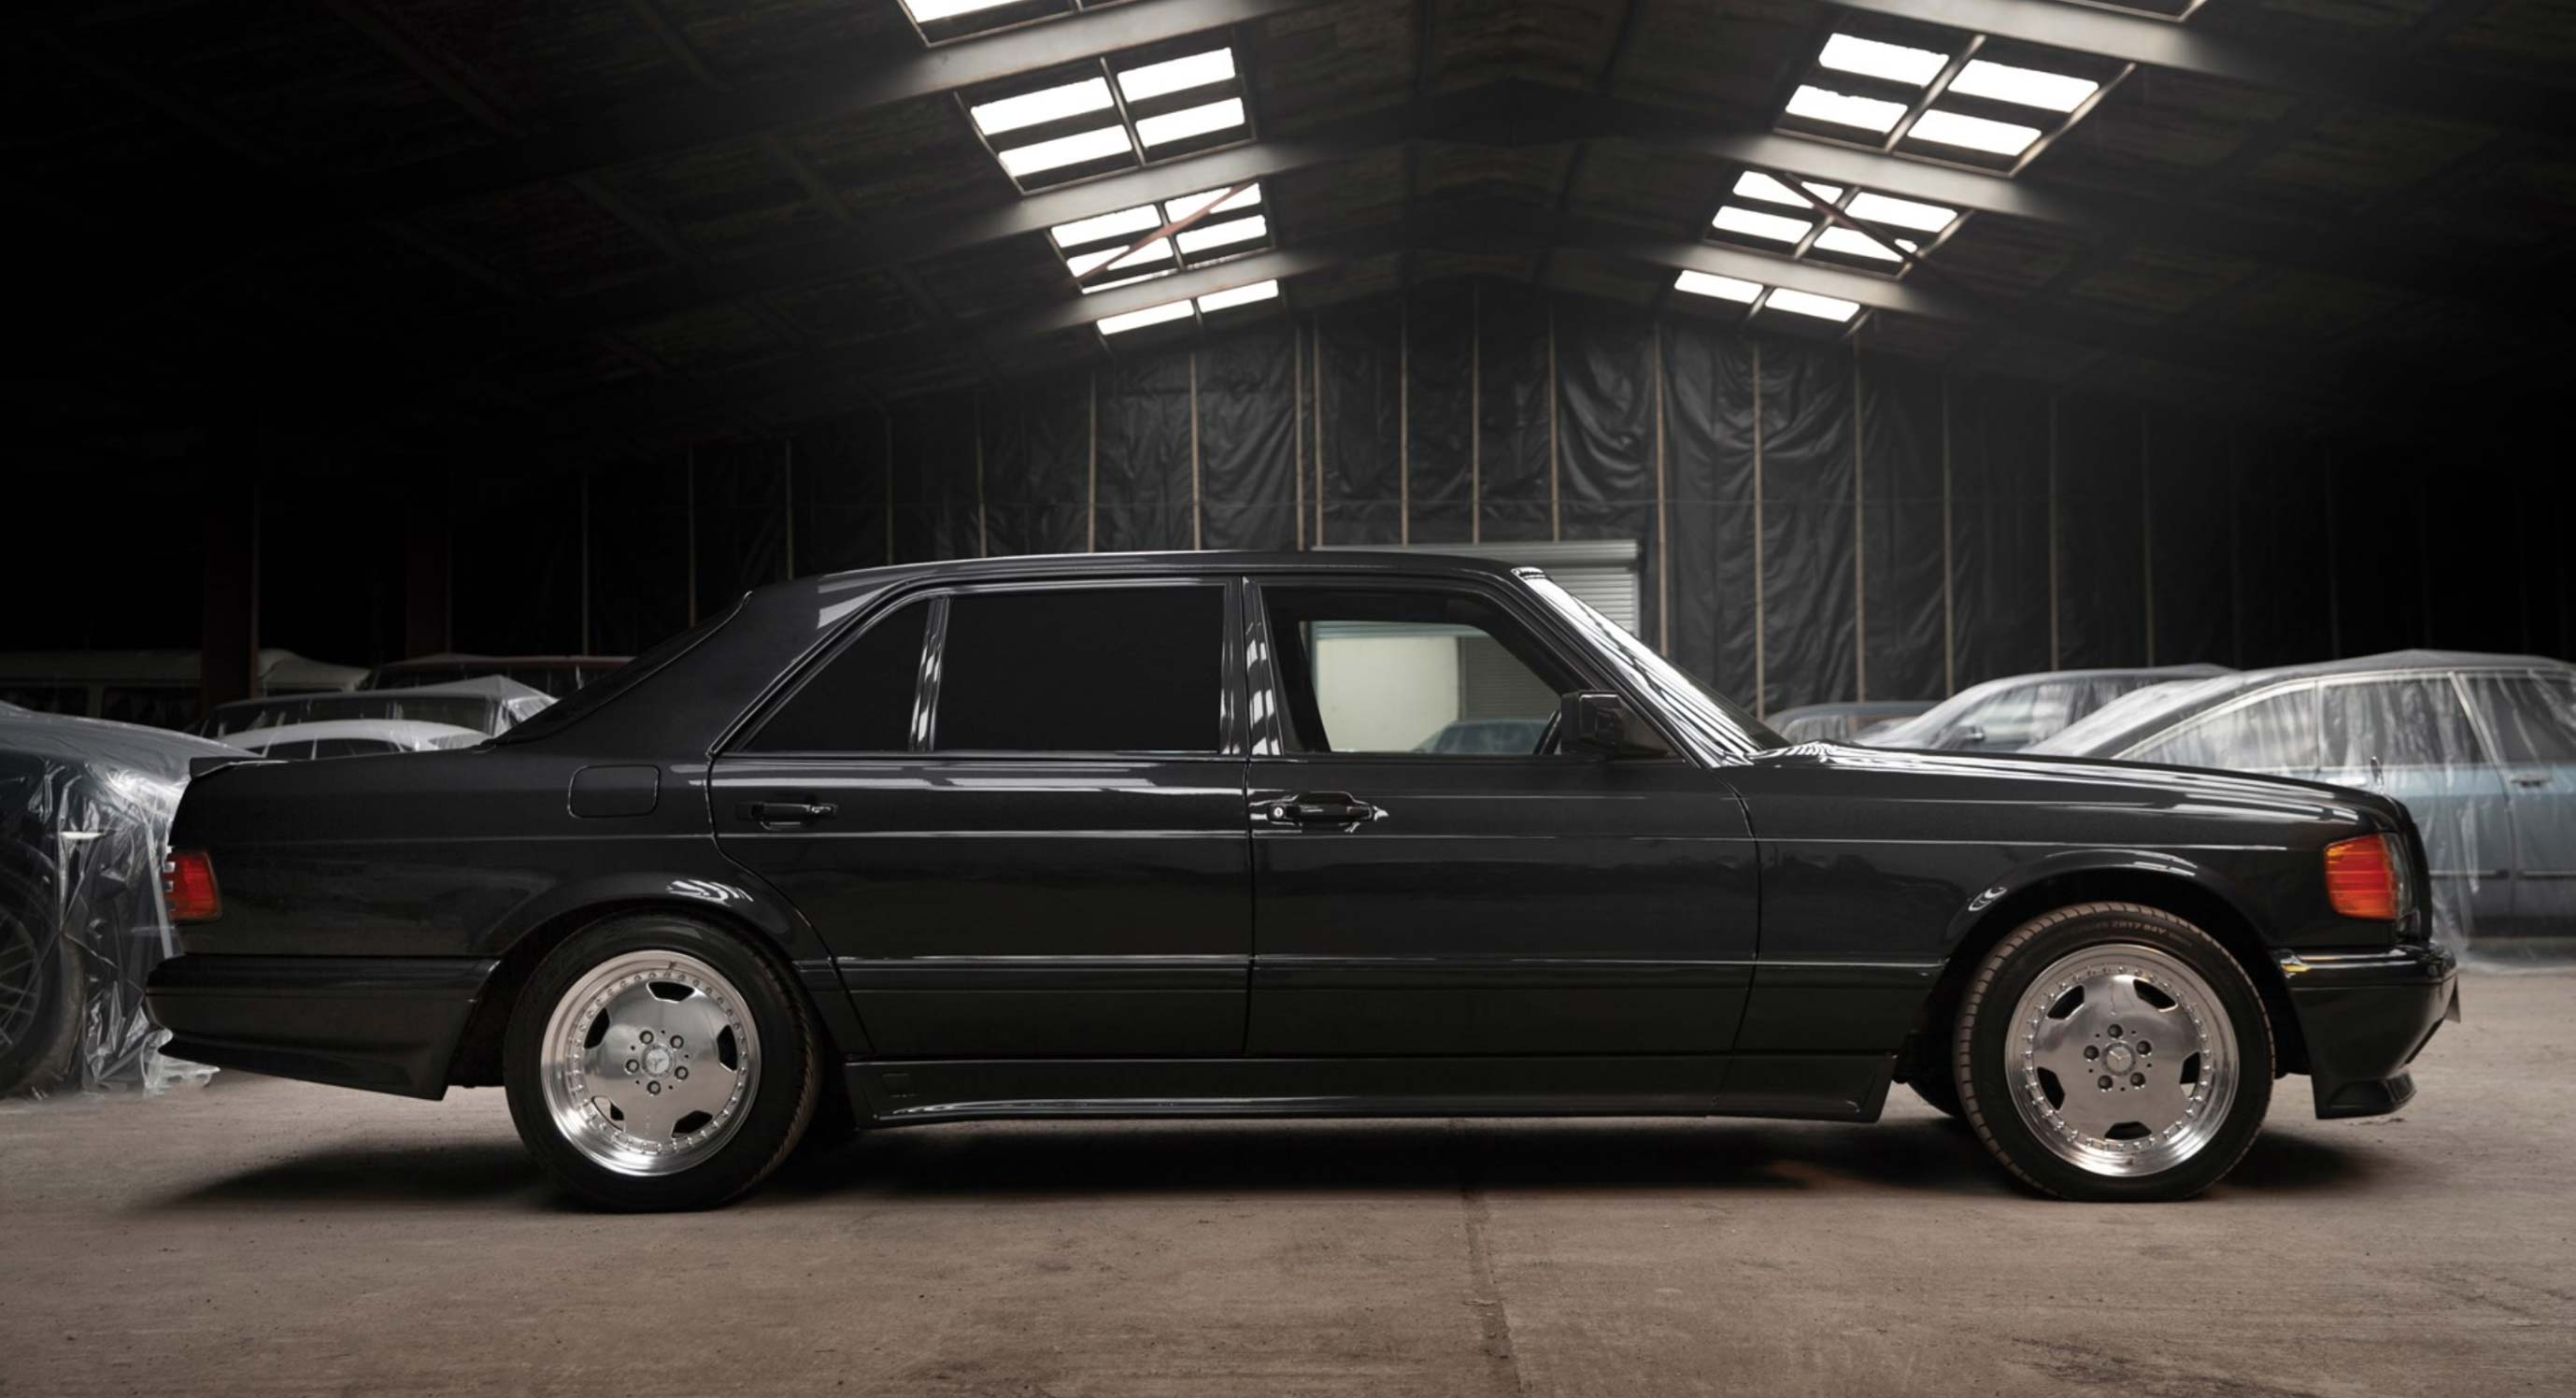 b60bda6181b8 This 1991 Mercedes 560 SEL 6.0 AMG Sedan Is As Mean As They Come